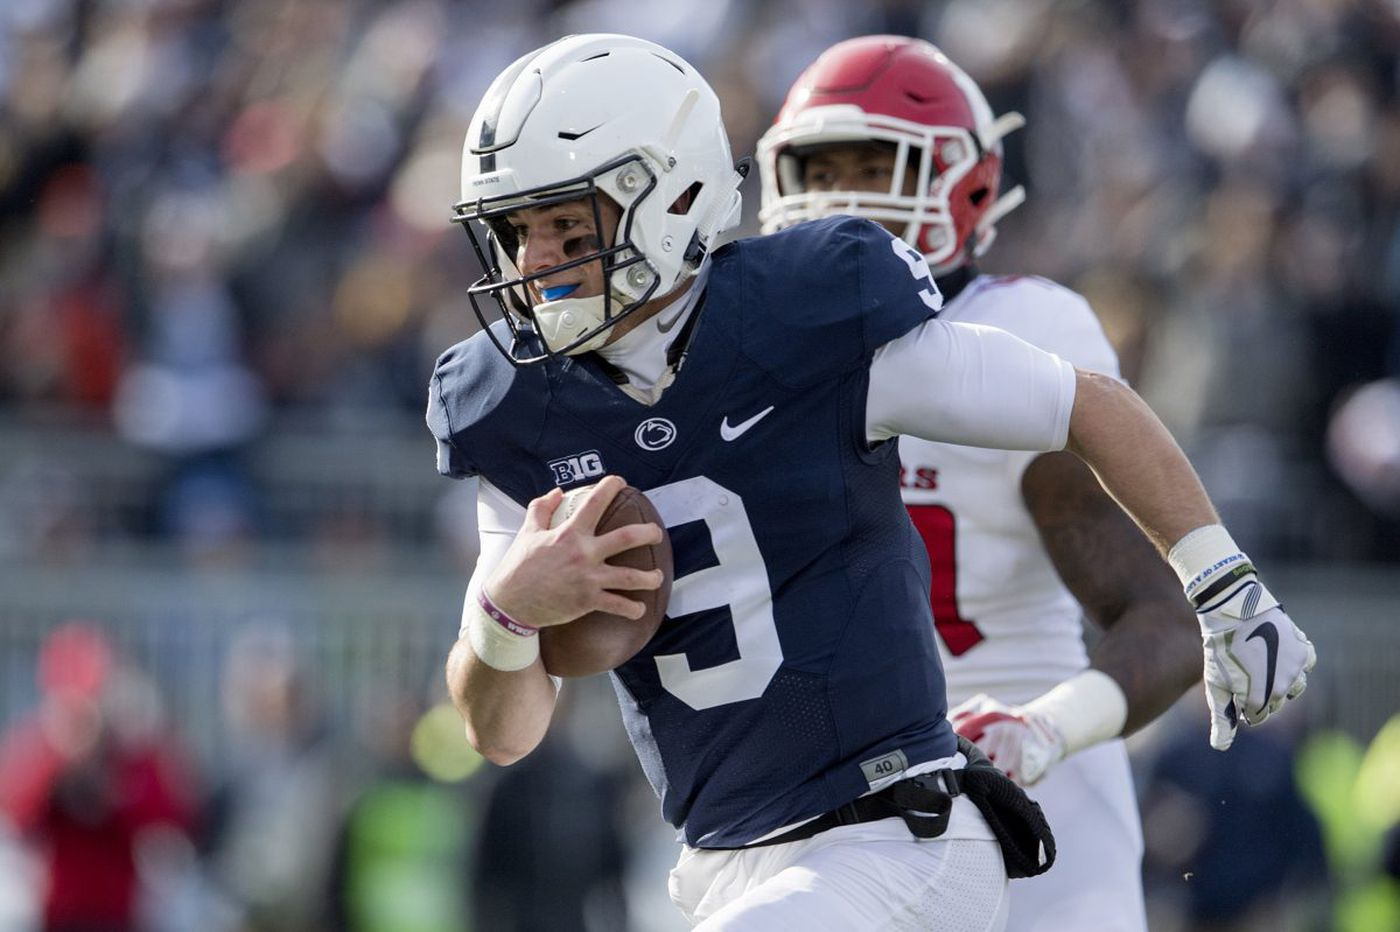 Five observations from Penn State's win over Rutgers